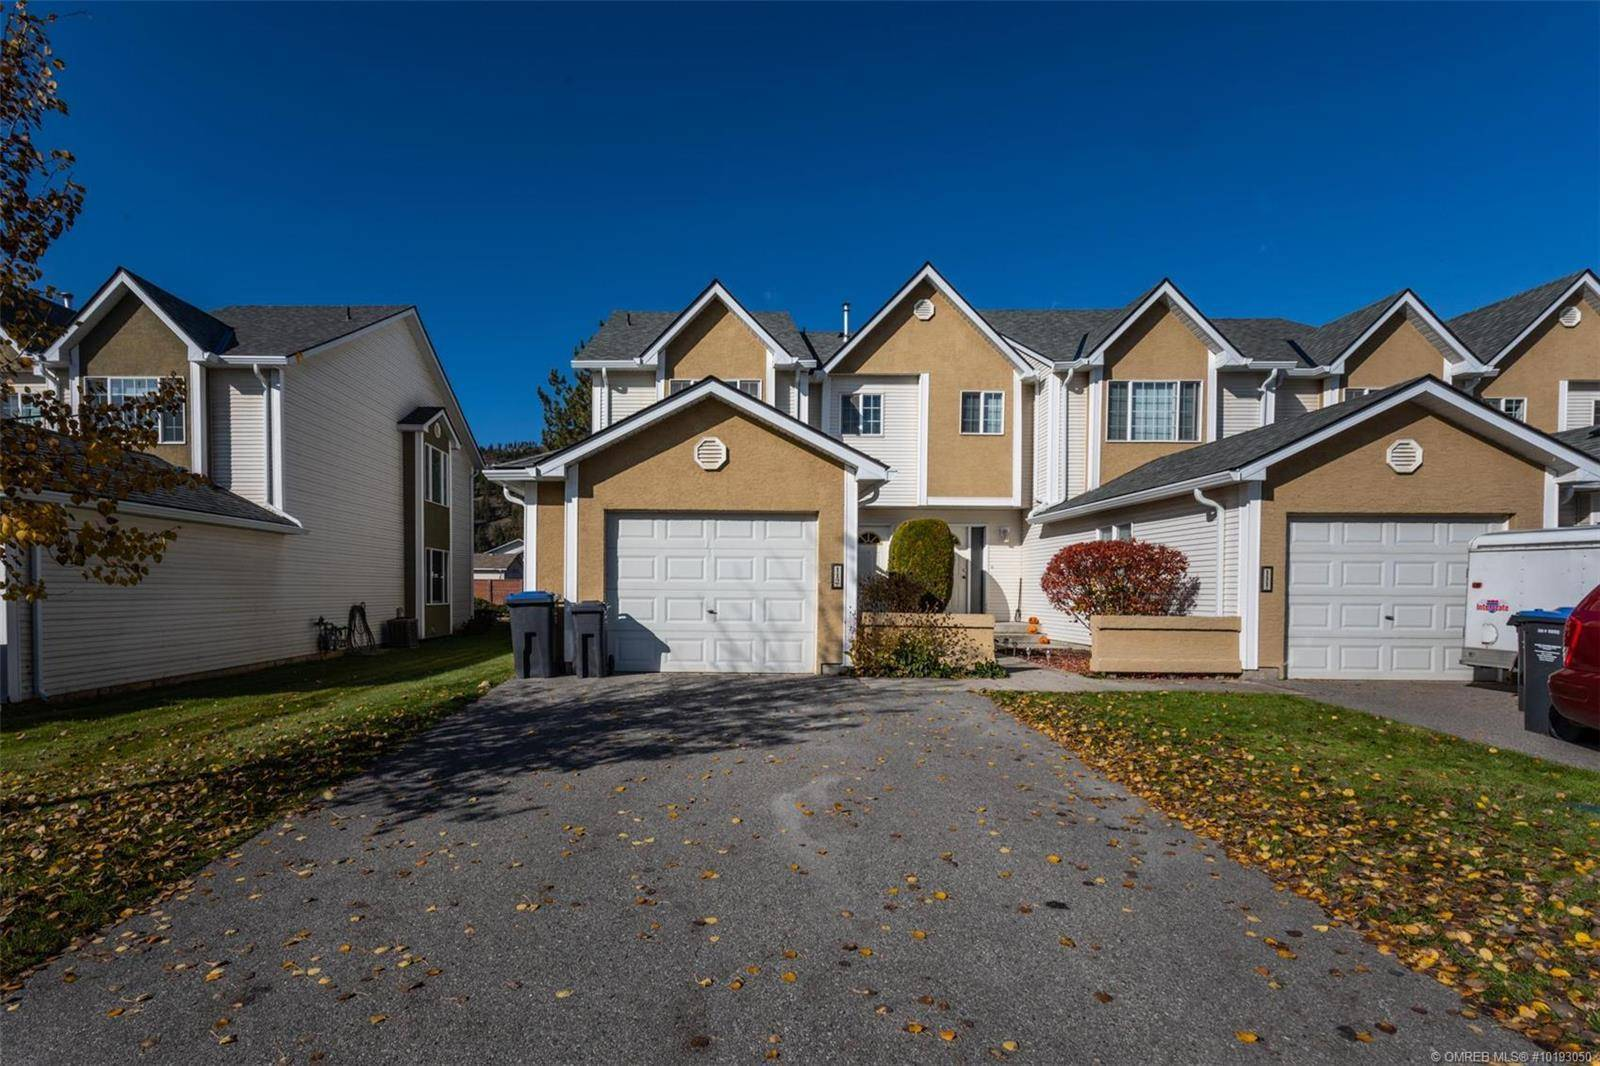 Townhouse for sale at 160 Celano Cres Unit 112 Kelowna British Columbia - MLS: 10193050